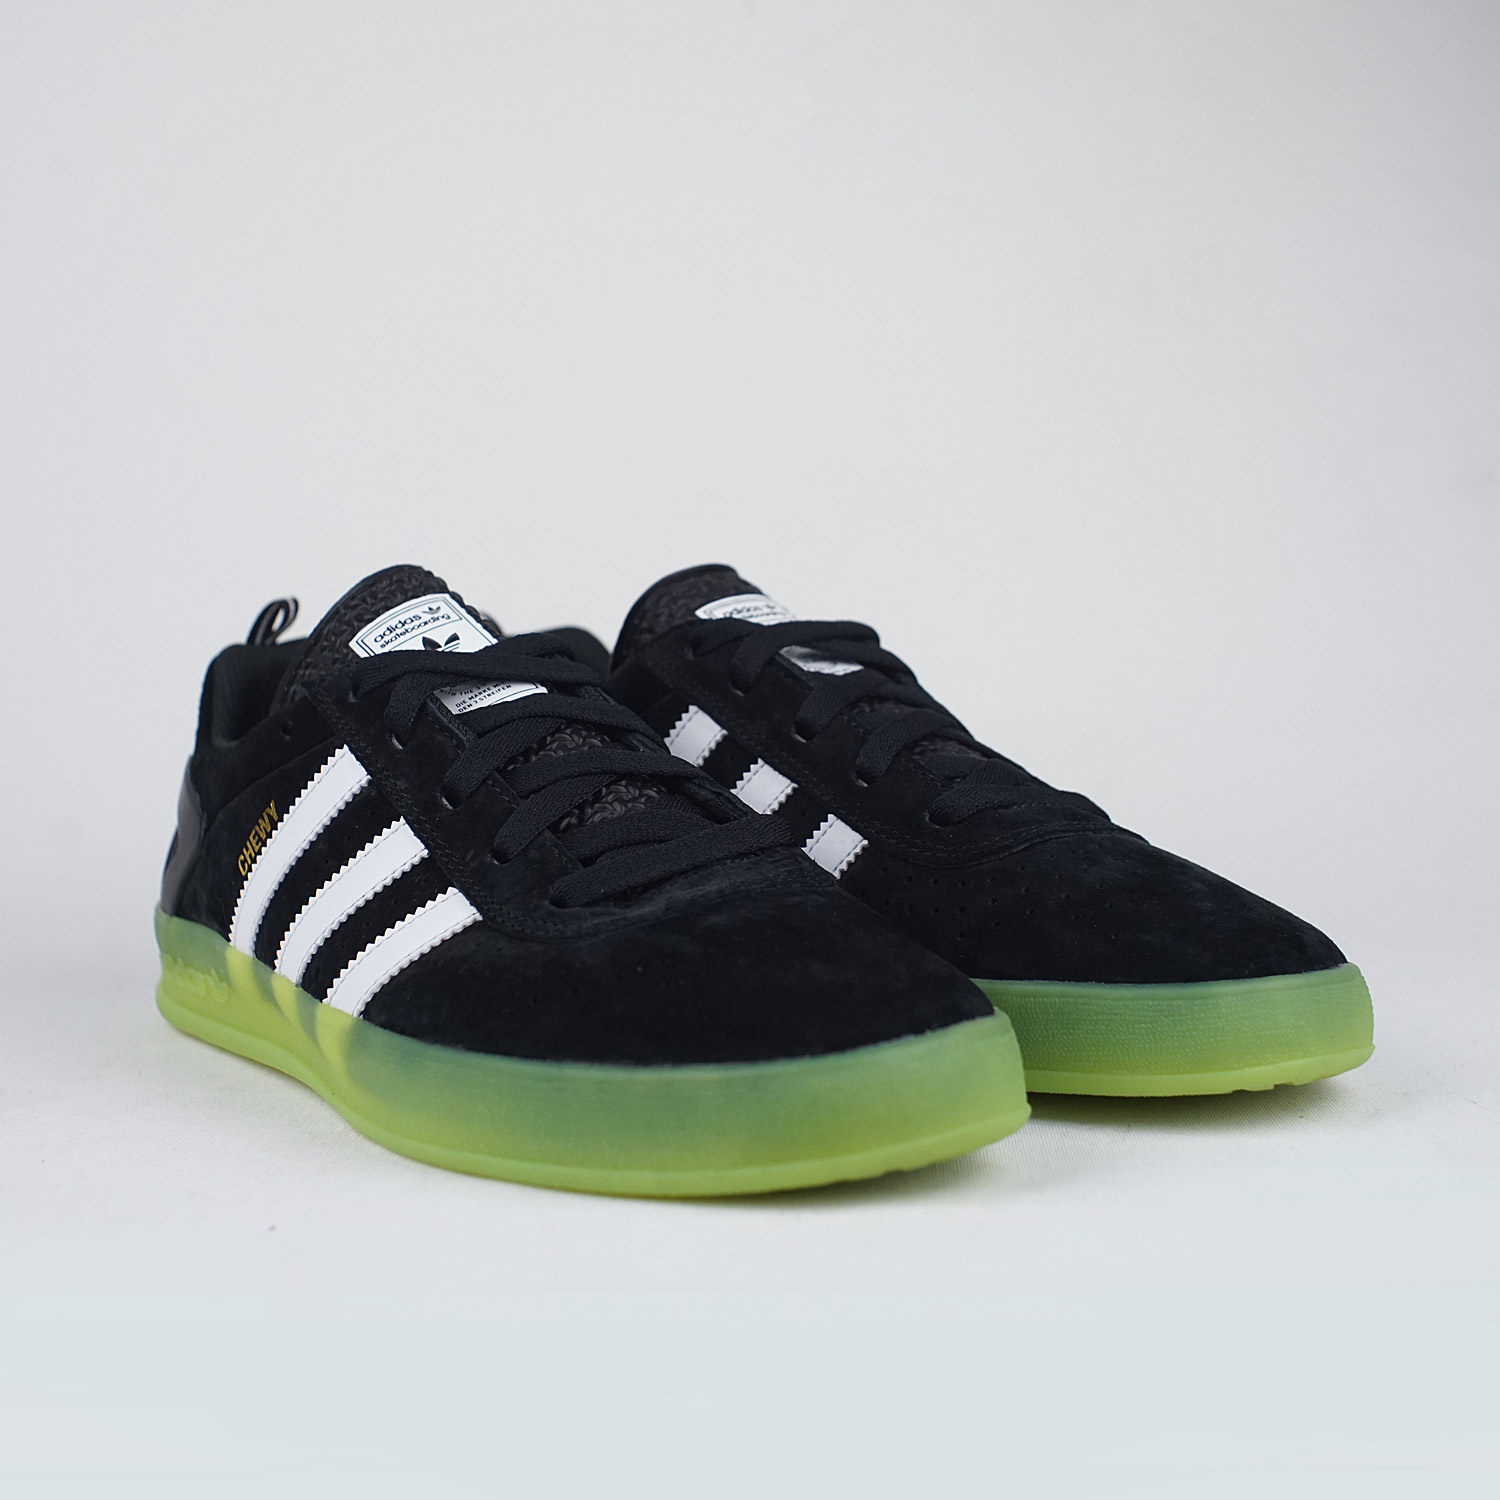 Adidas Palace Pro Chewy Cannon Cblack Ftwwht Sgreen Lobby